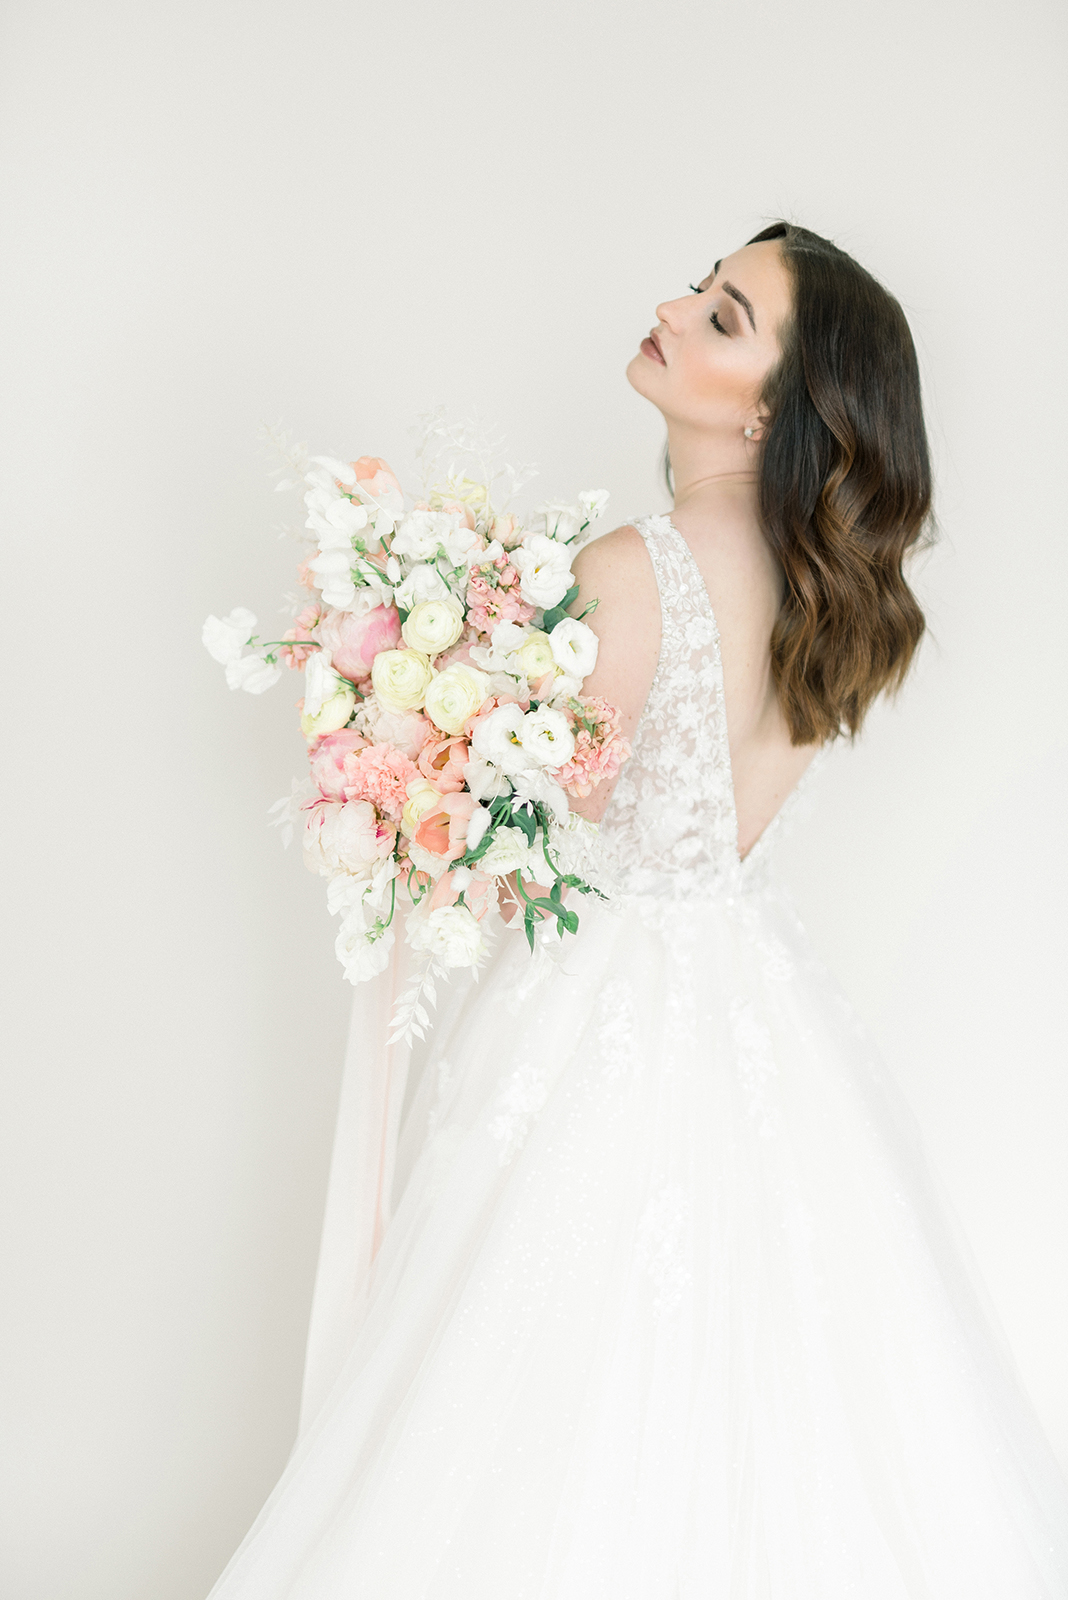 Wedding Gown and Bridal hairstyle ideas for 2019